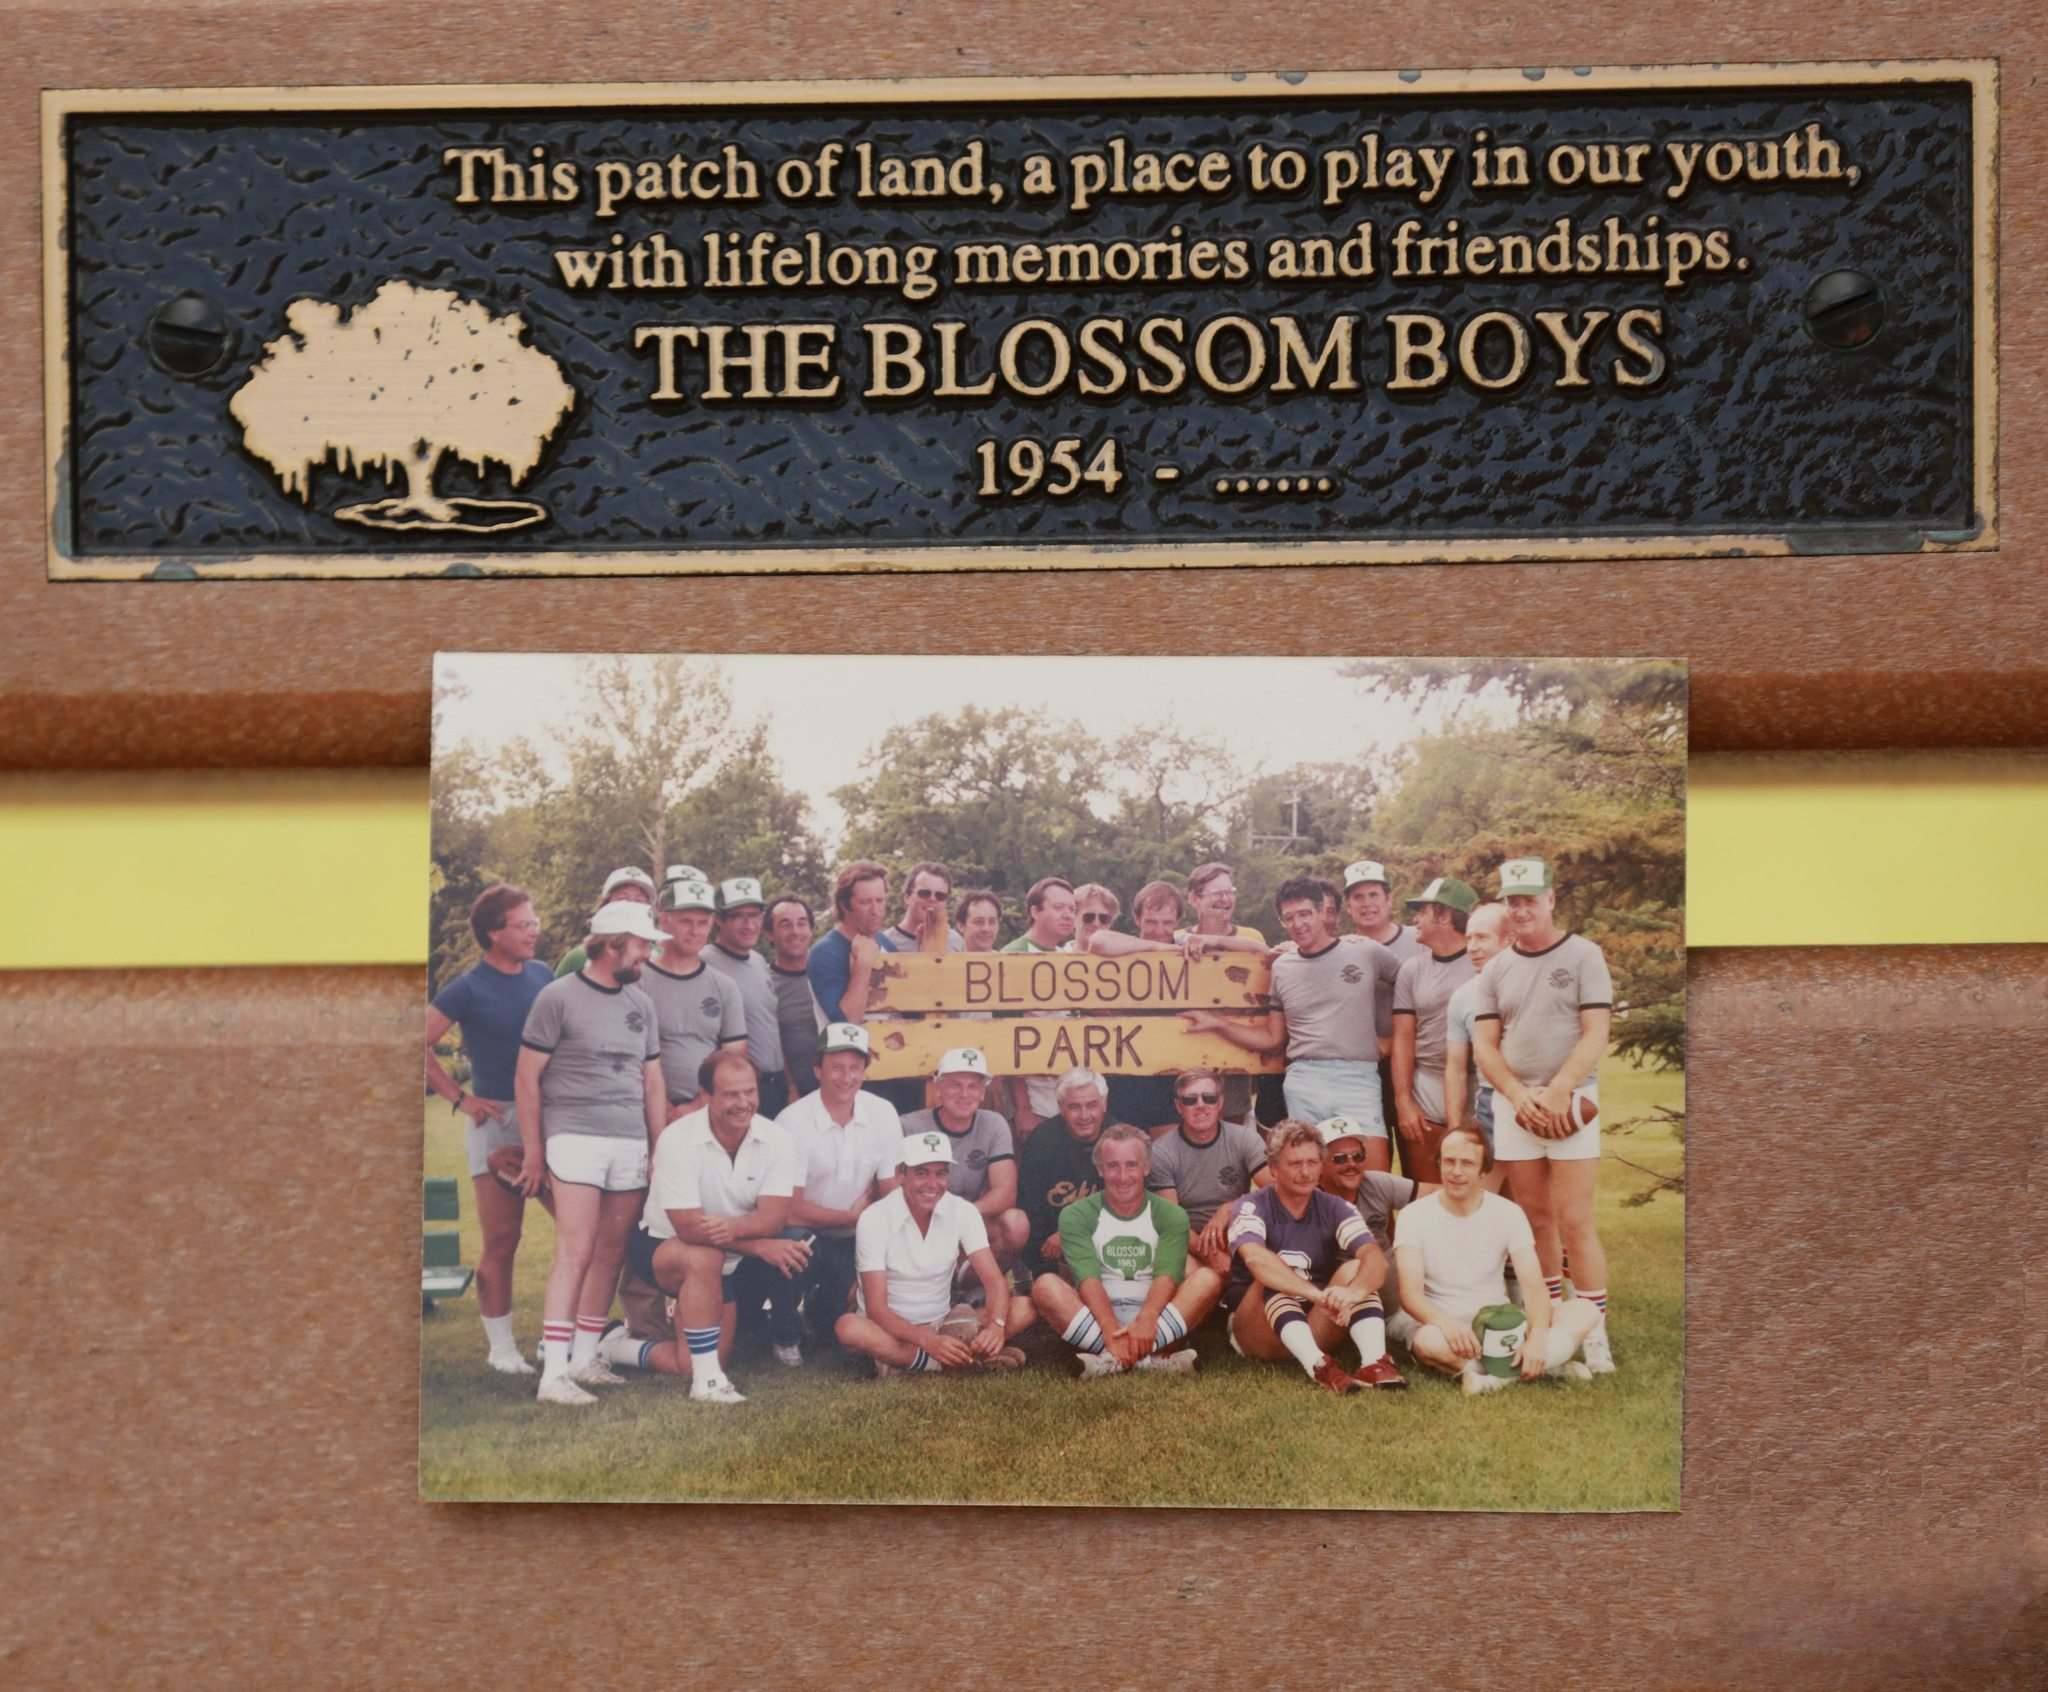 RUTH BONNEVILLE / WINNIPEG FREE PRESS</p><p>A photo of the Blossom Boys from the 1990s is seen on the bench that the group purchased for Andrew Currie Park.</p>